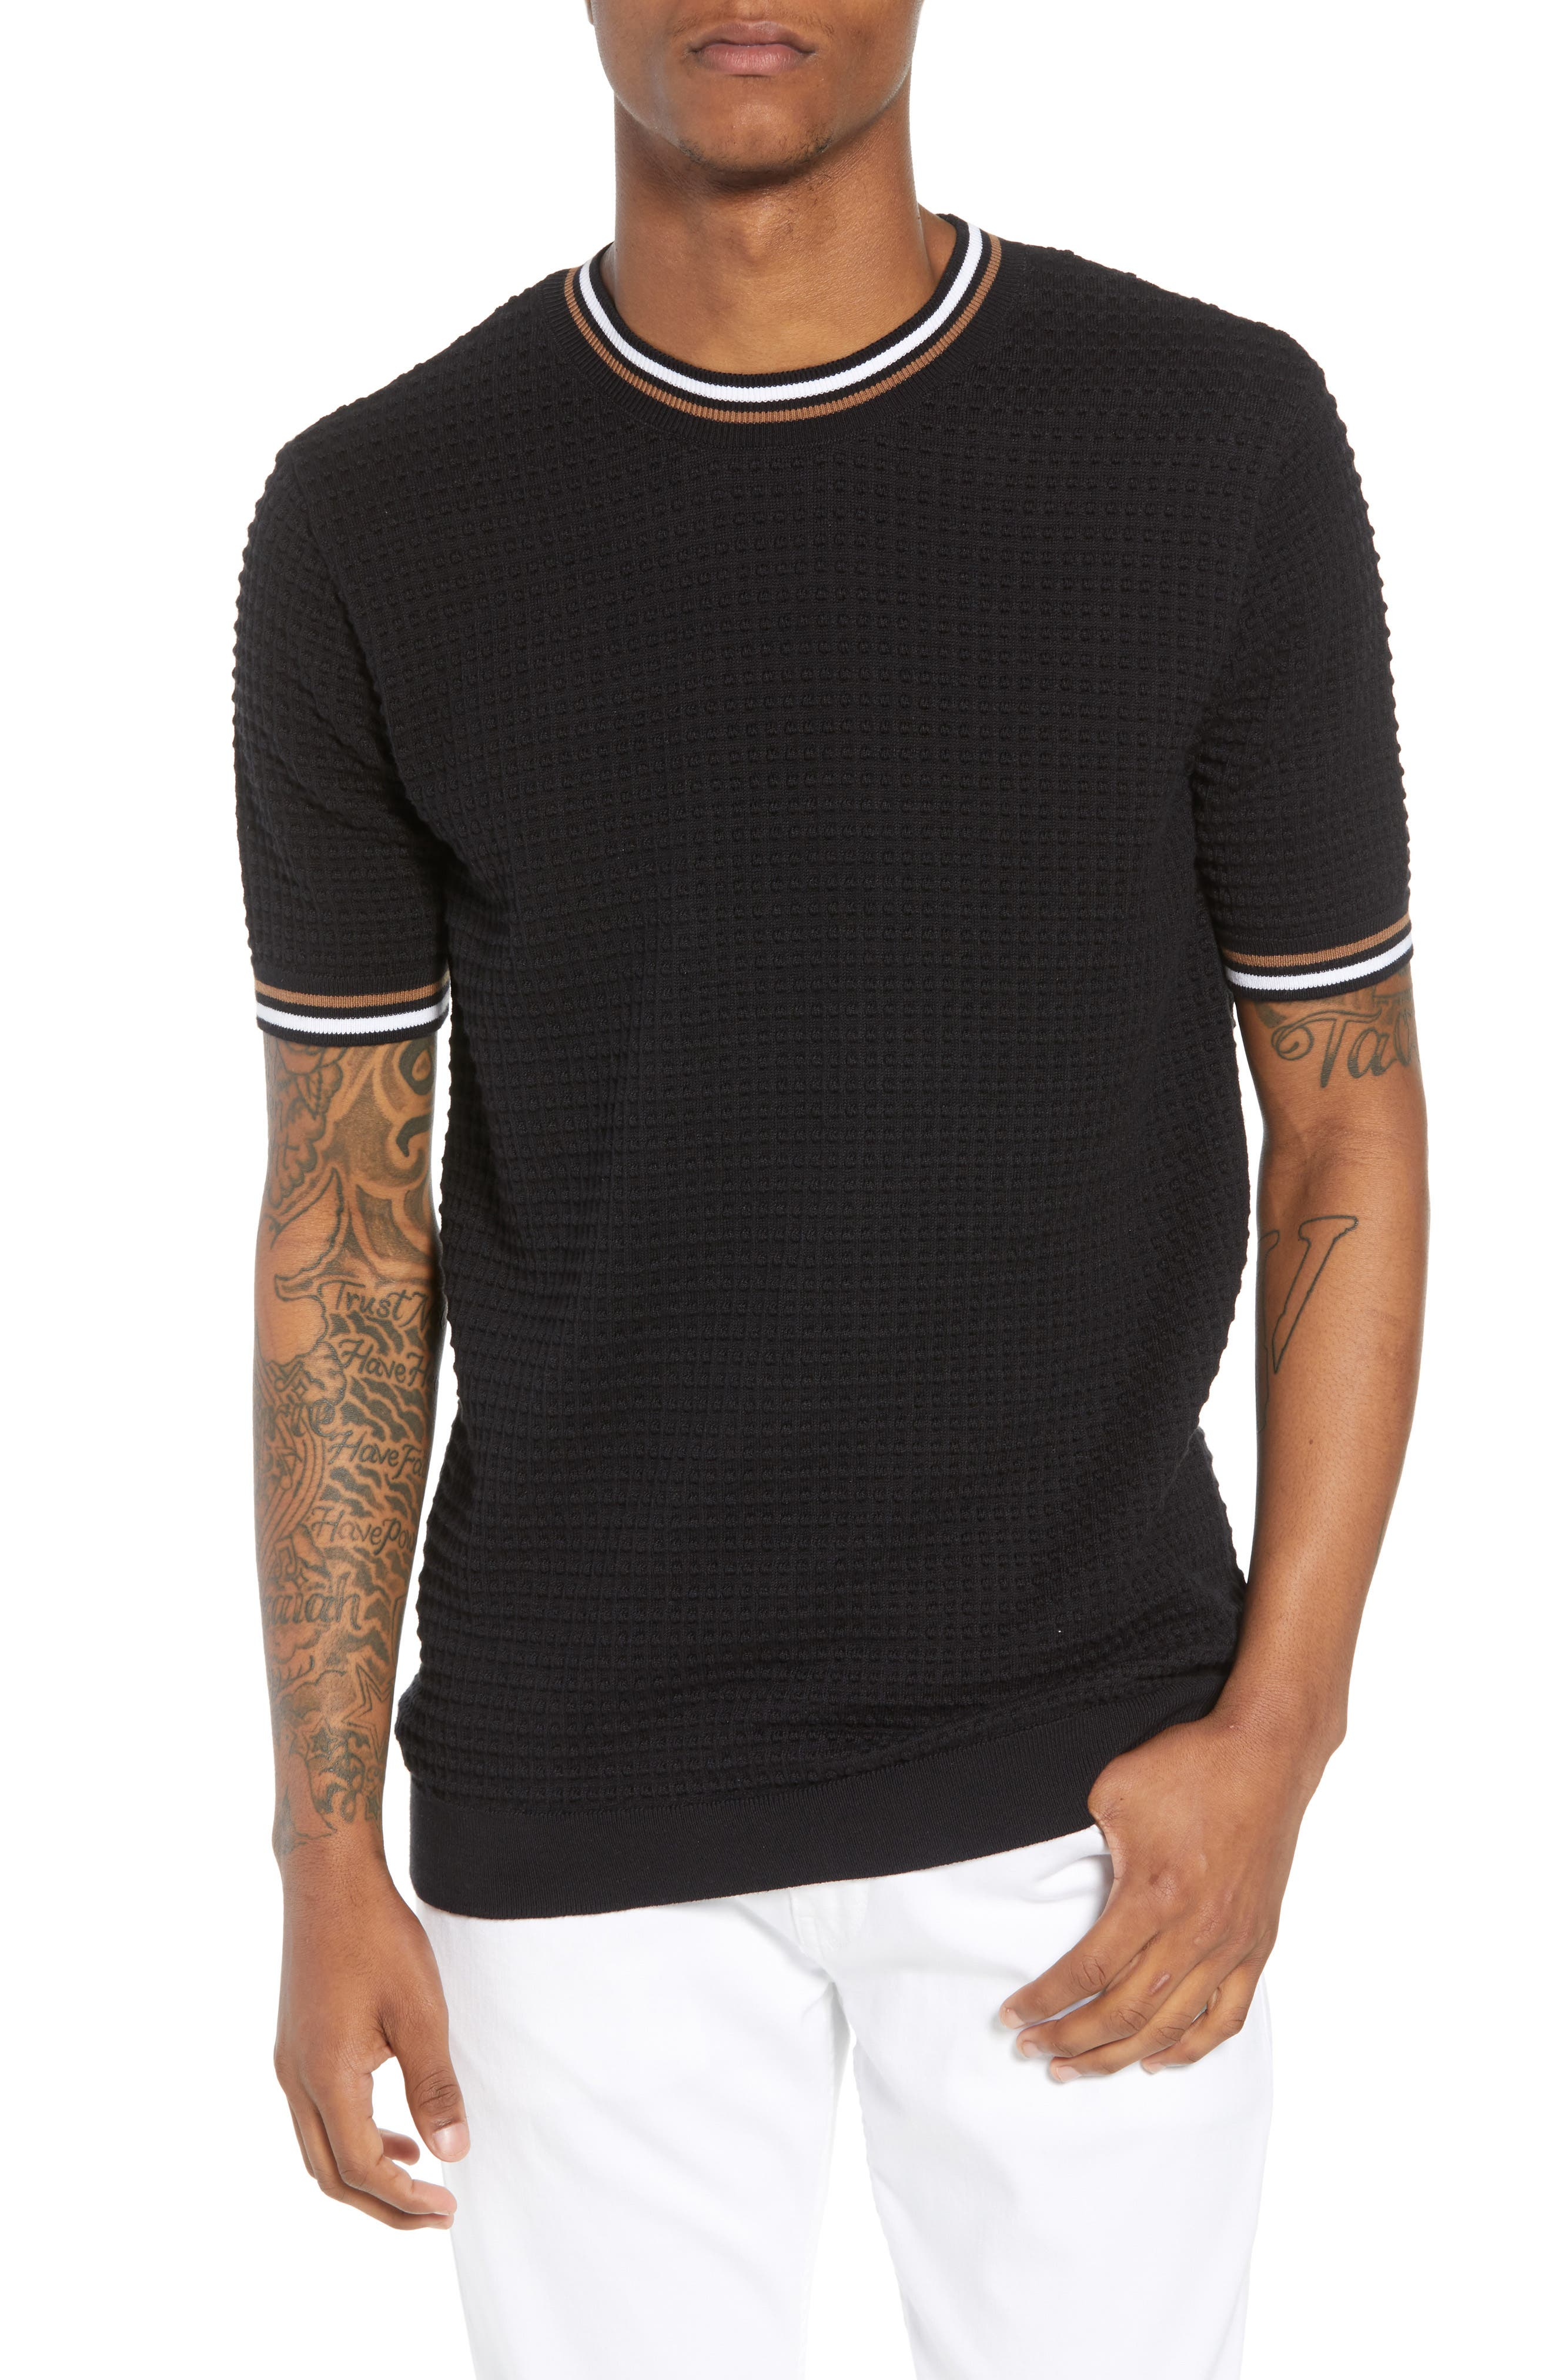 Main Image - Topman Slim Fit Textured Short Sleeve Sweater